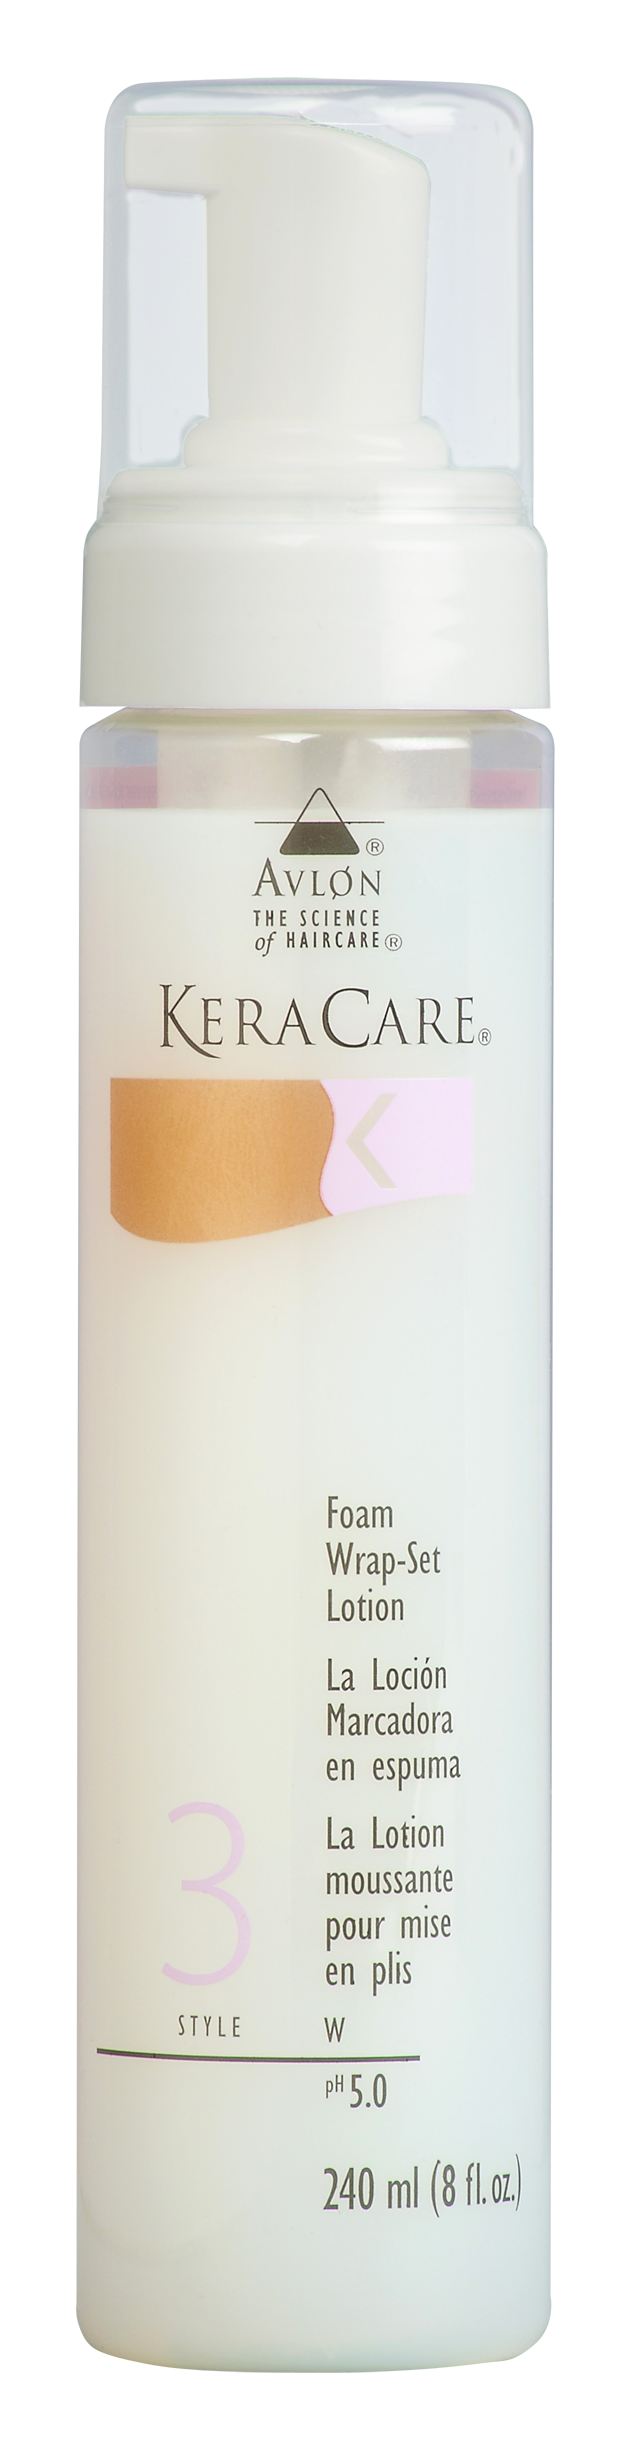 KeraCare® Foam Wrap Lotion